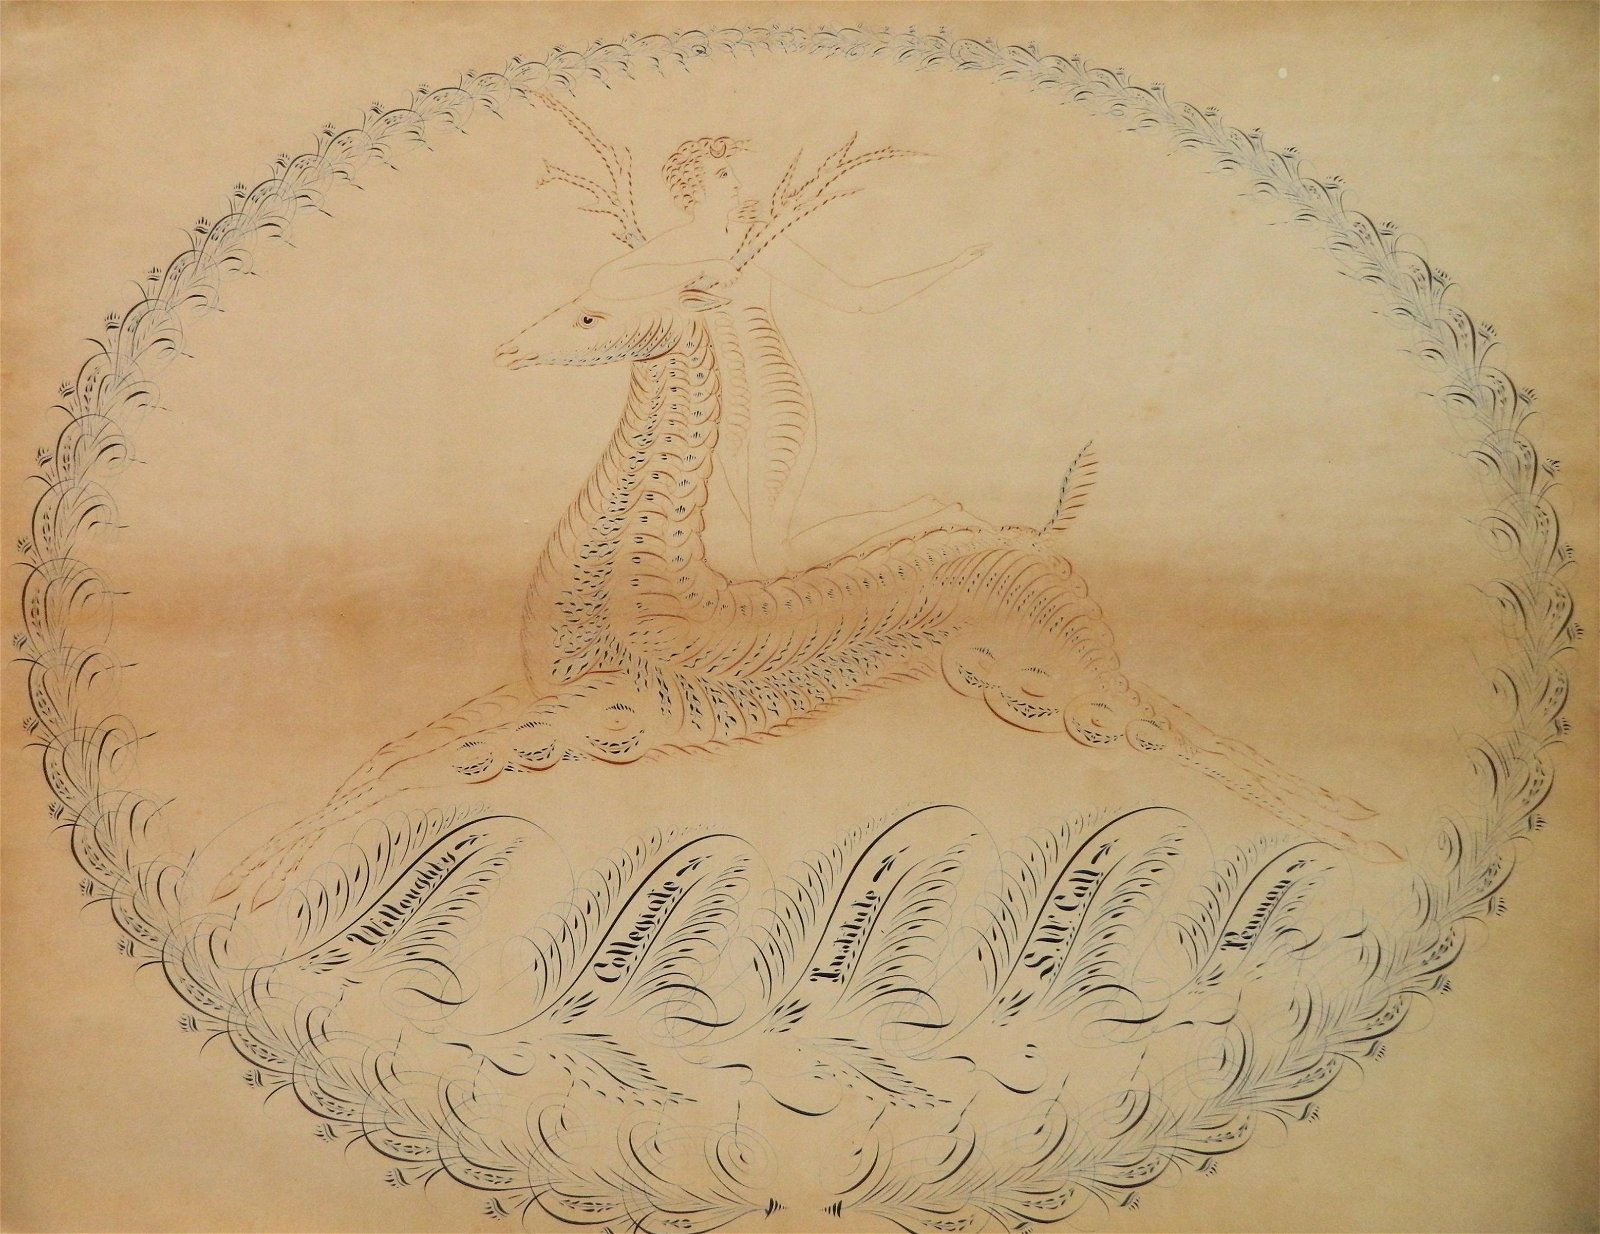 Antique Spencerian pen & ink drawing by S. W. Call